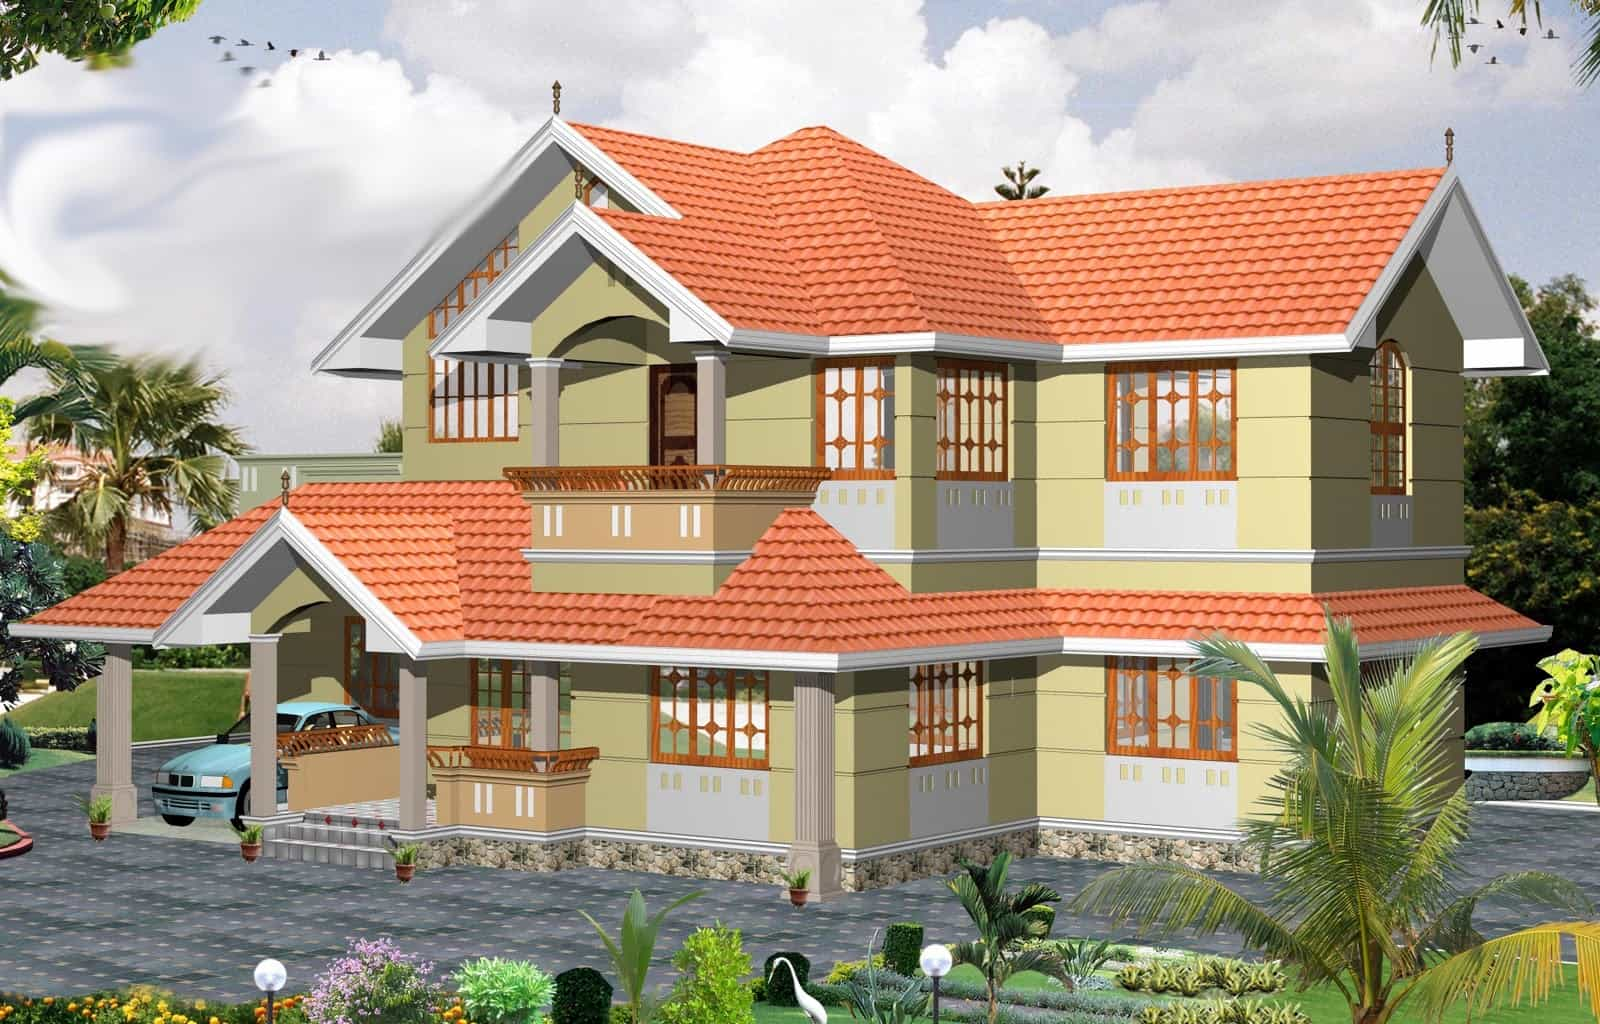 Traditional 3 bhk kerala villa design at 2000 for Kerala style villa plans